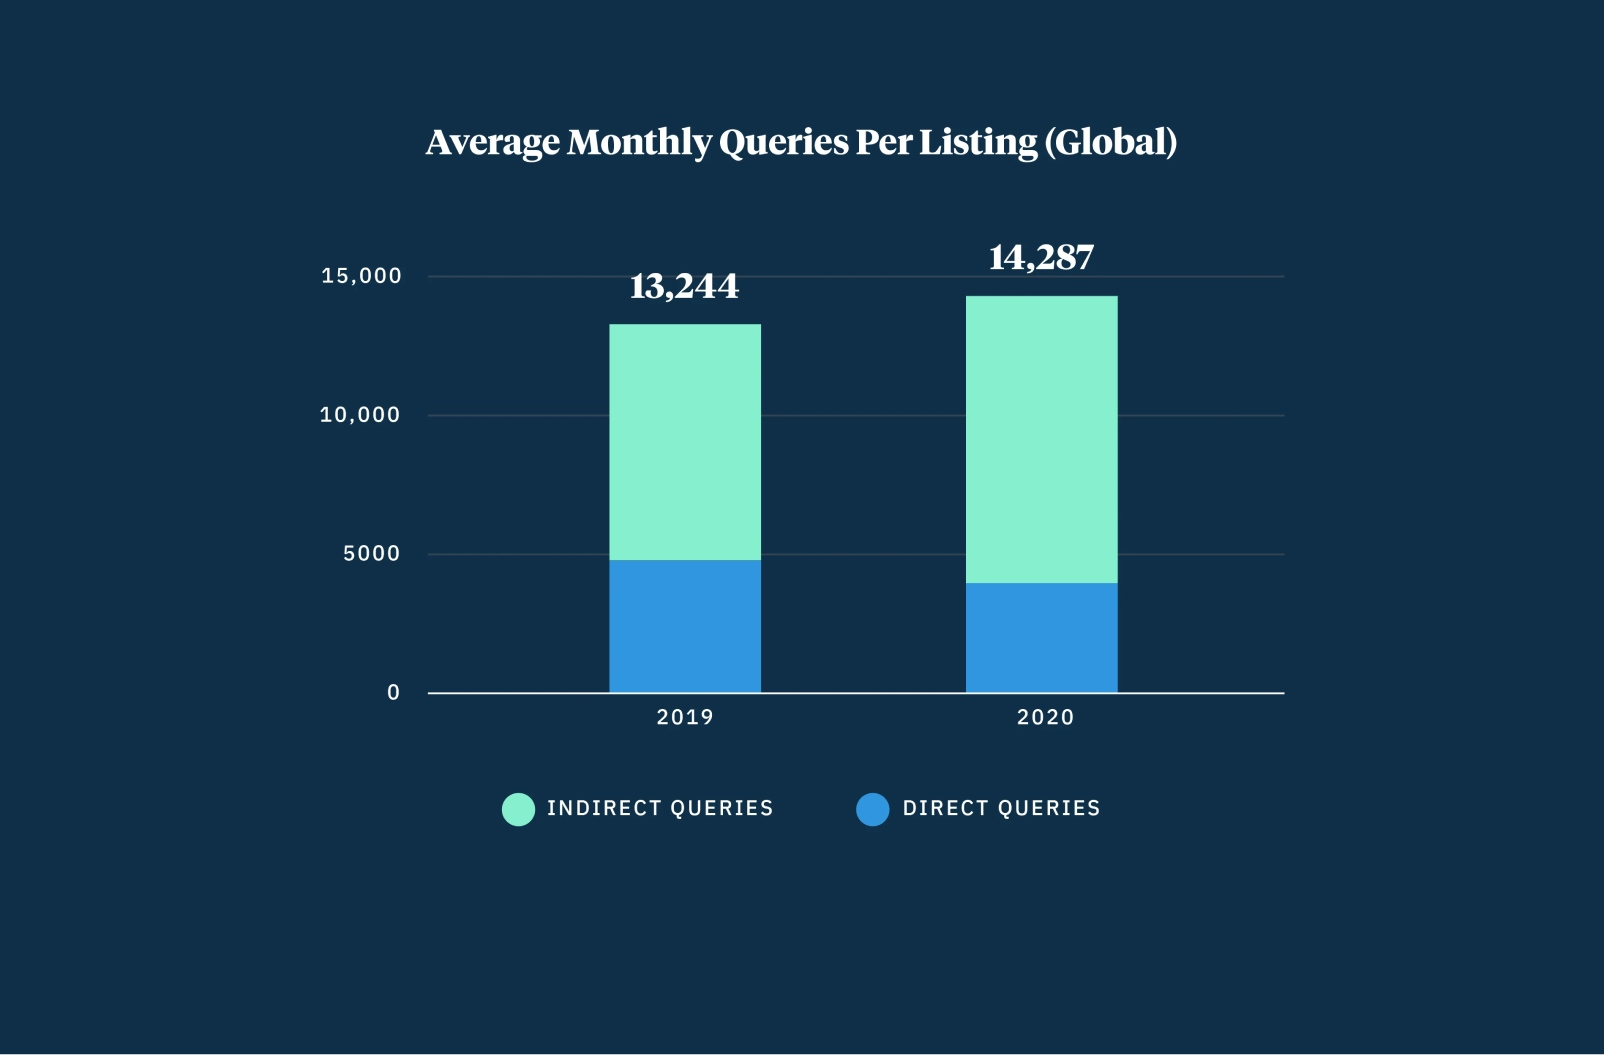 Bar graph of monthly queries per listing